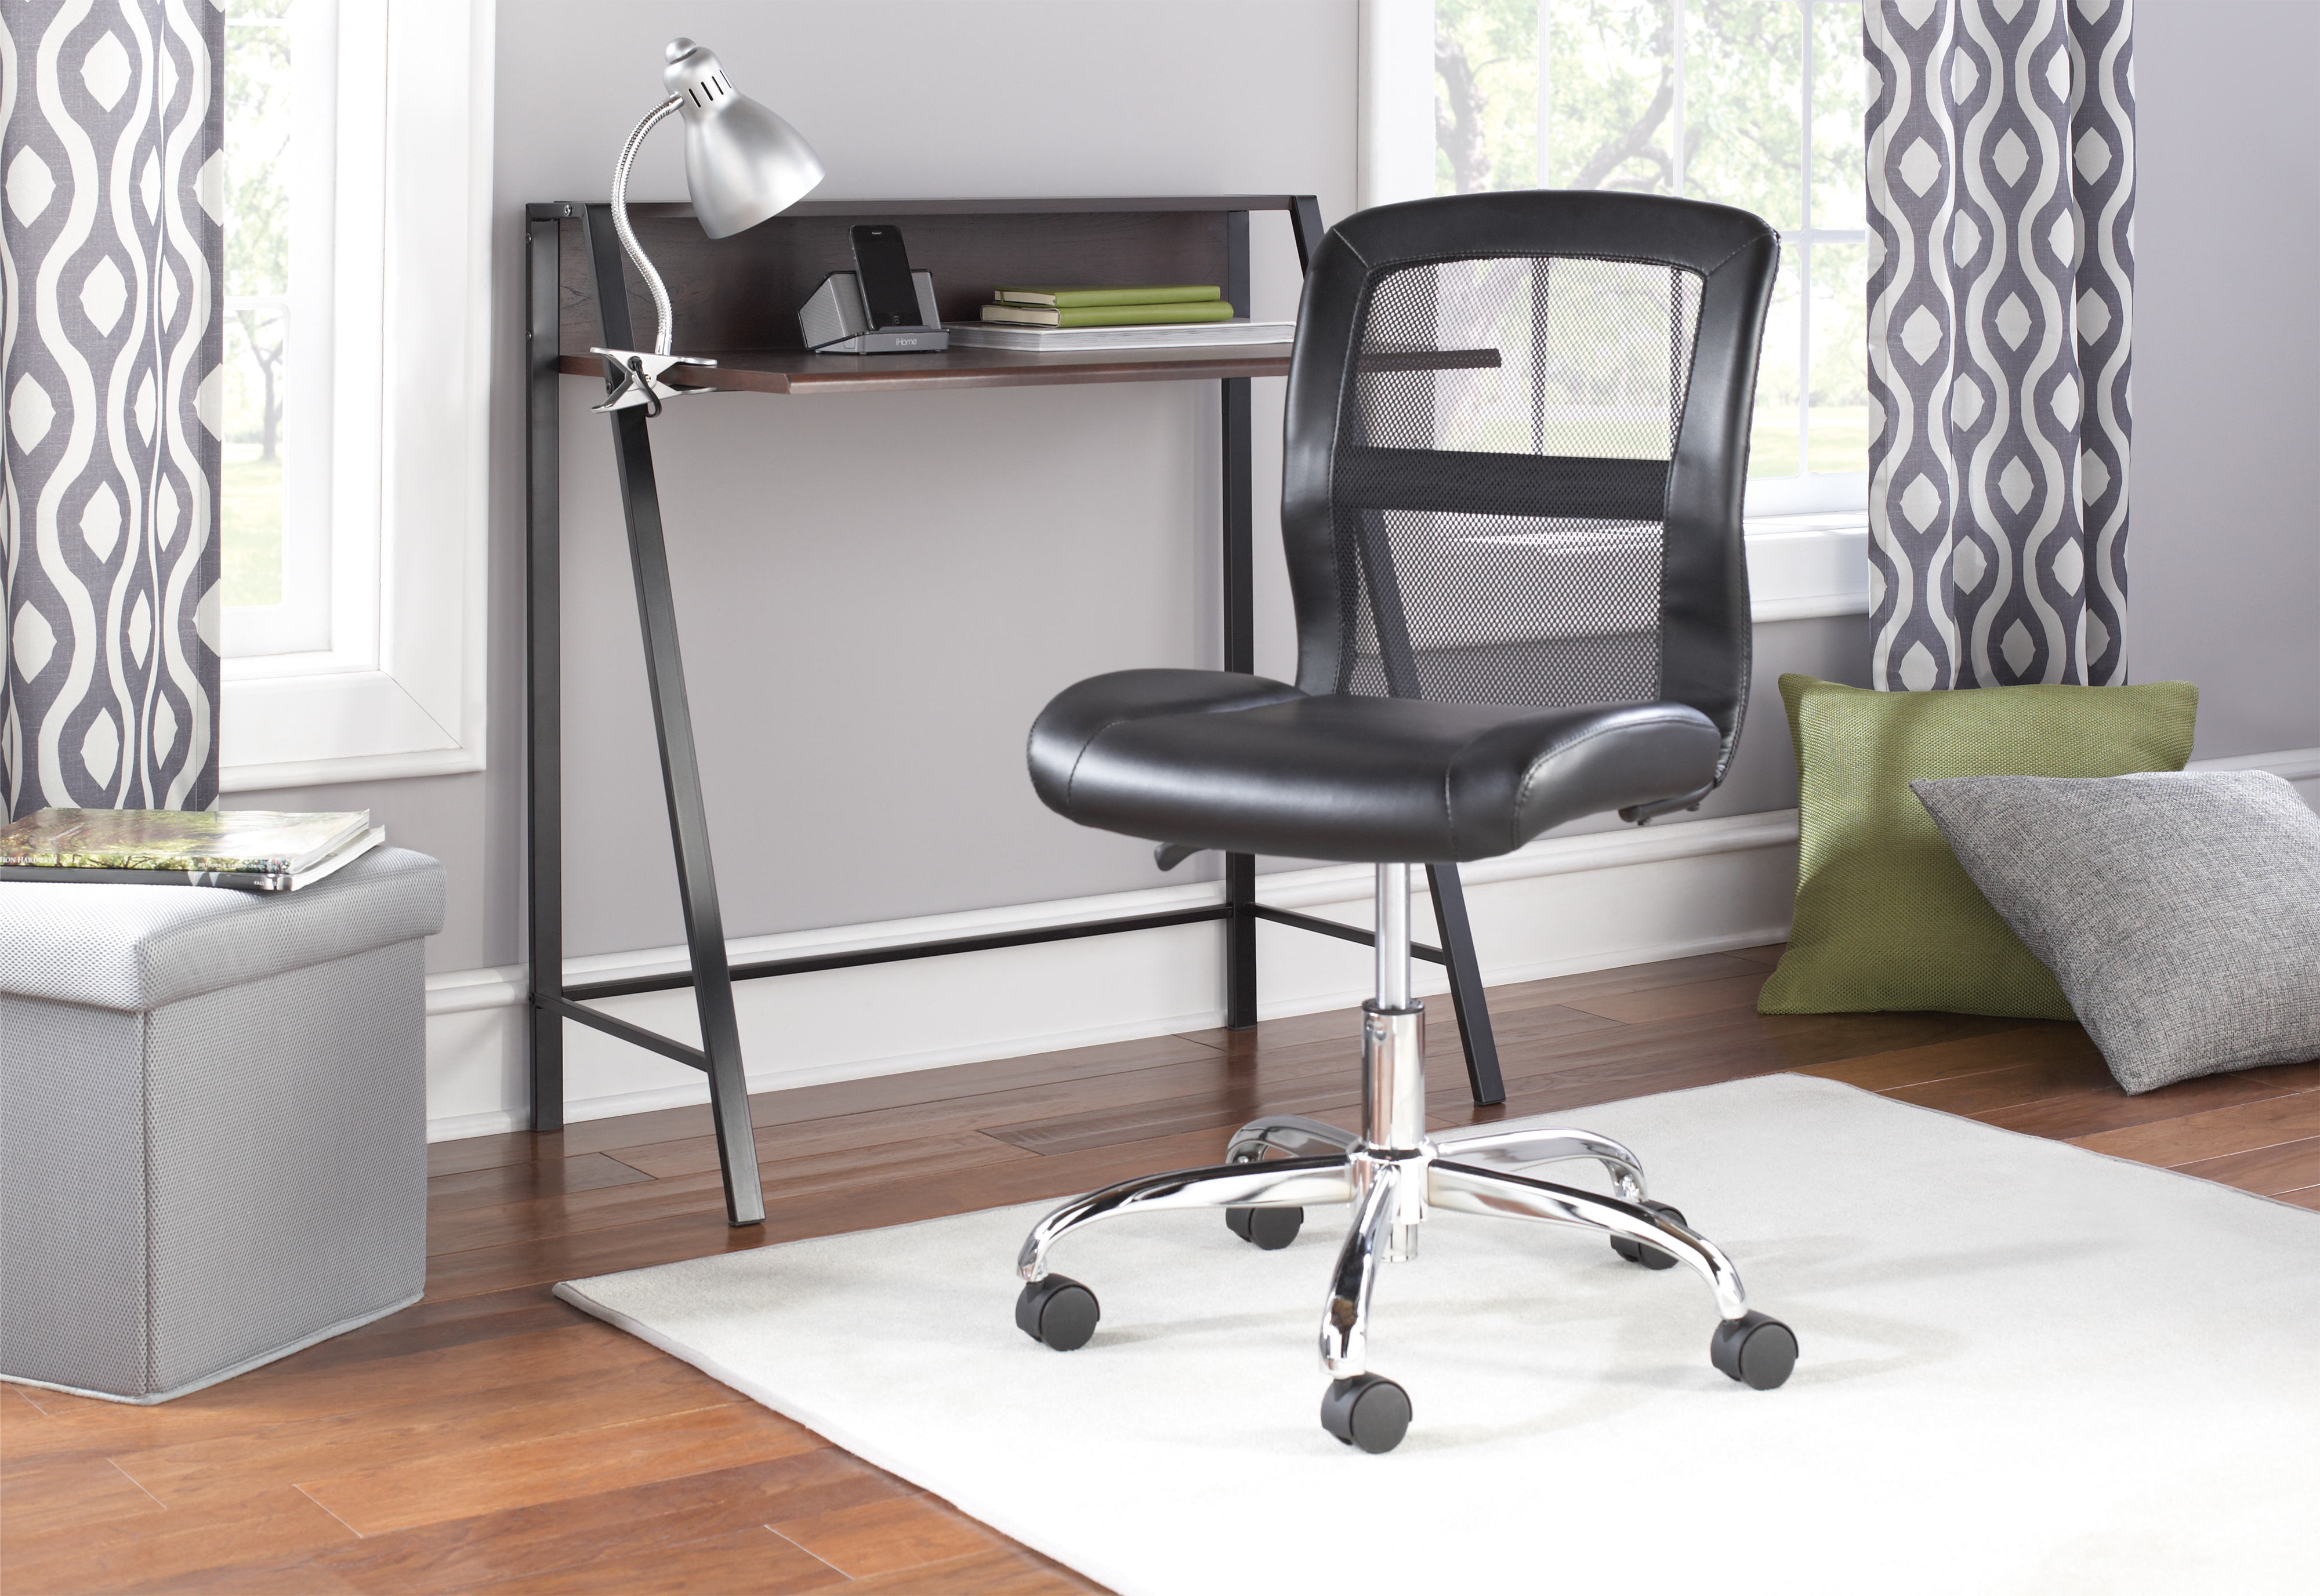 Mainstays Vinyl and Mesh Task Chair Multiple Colors Black